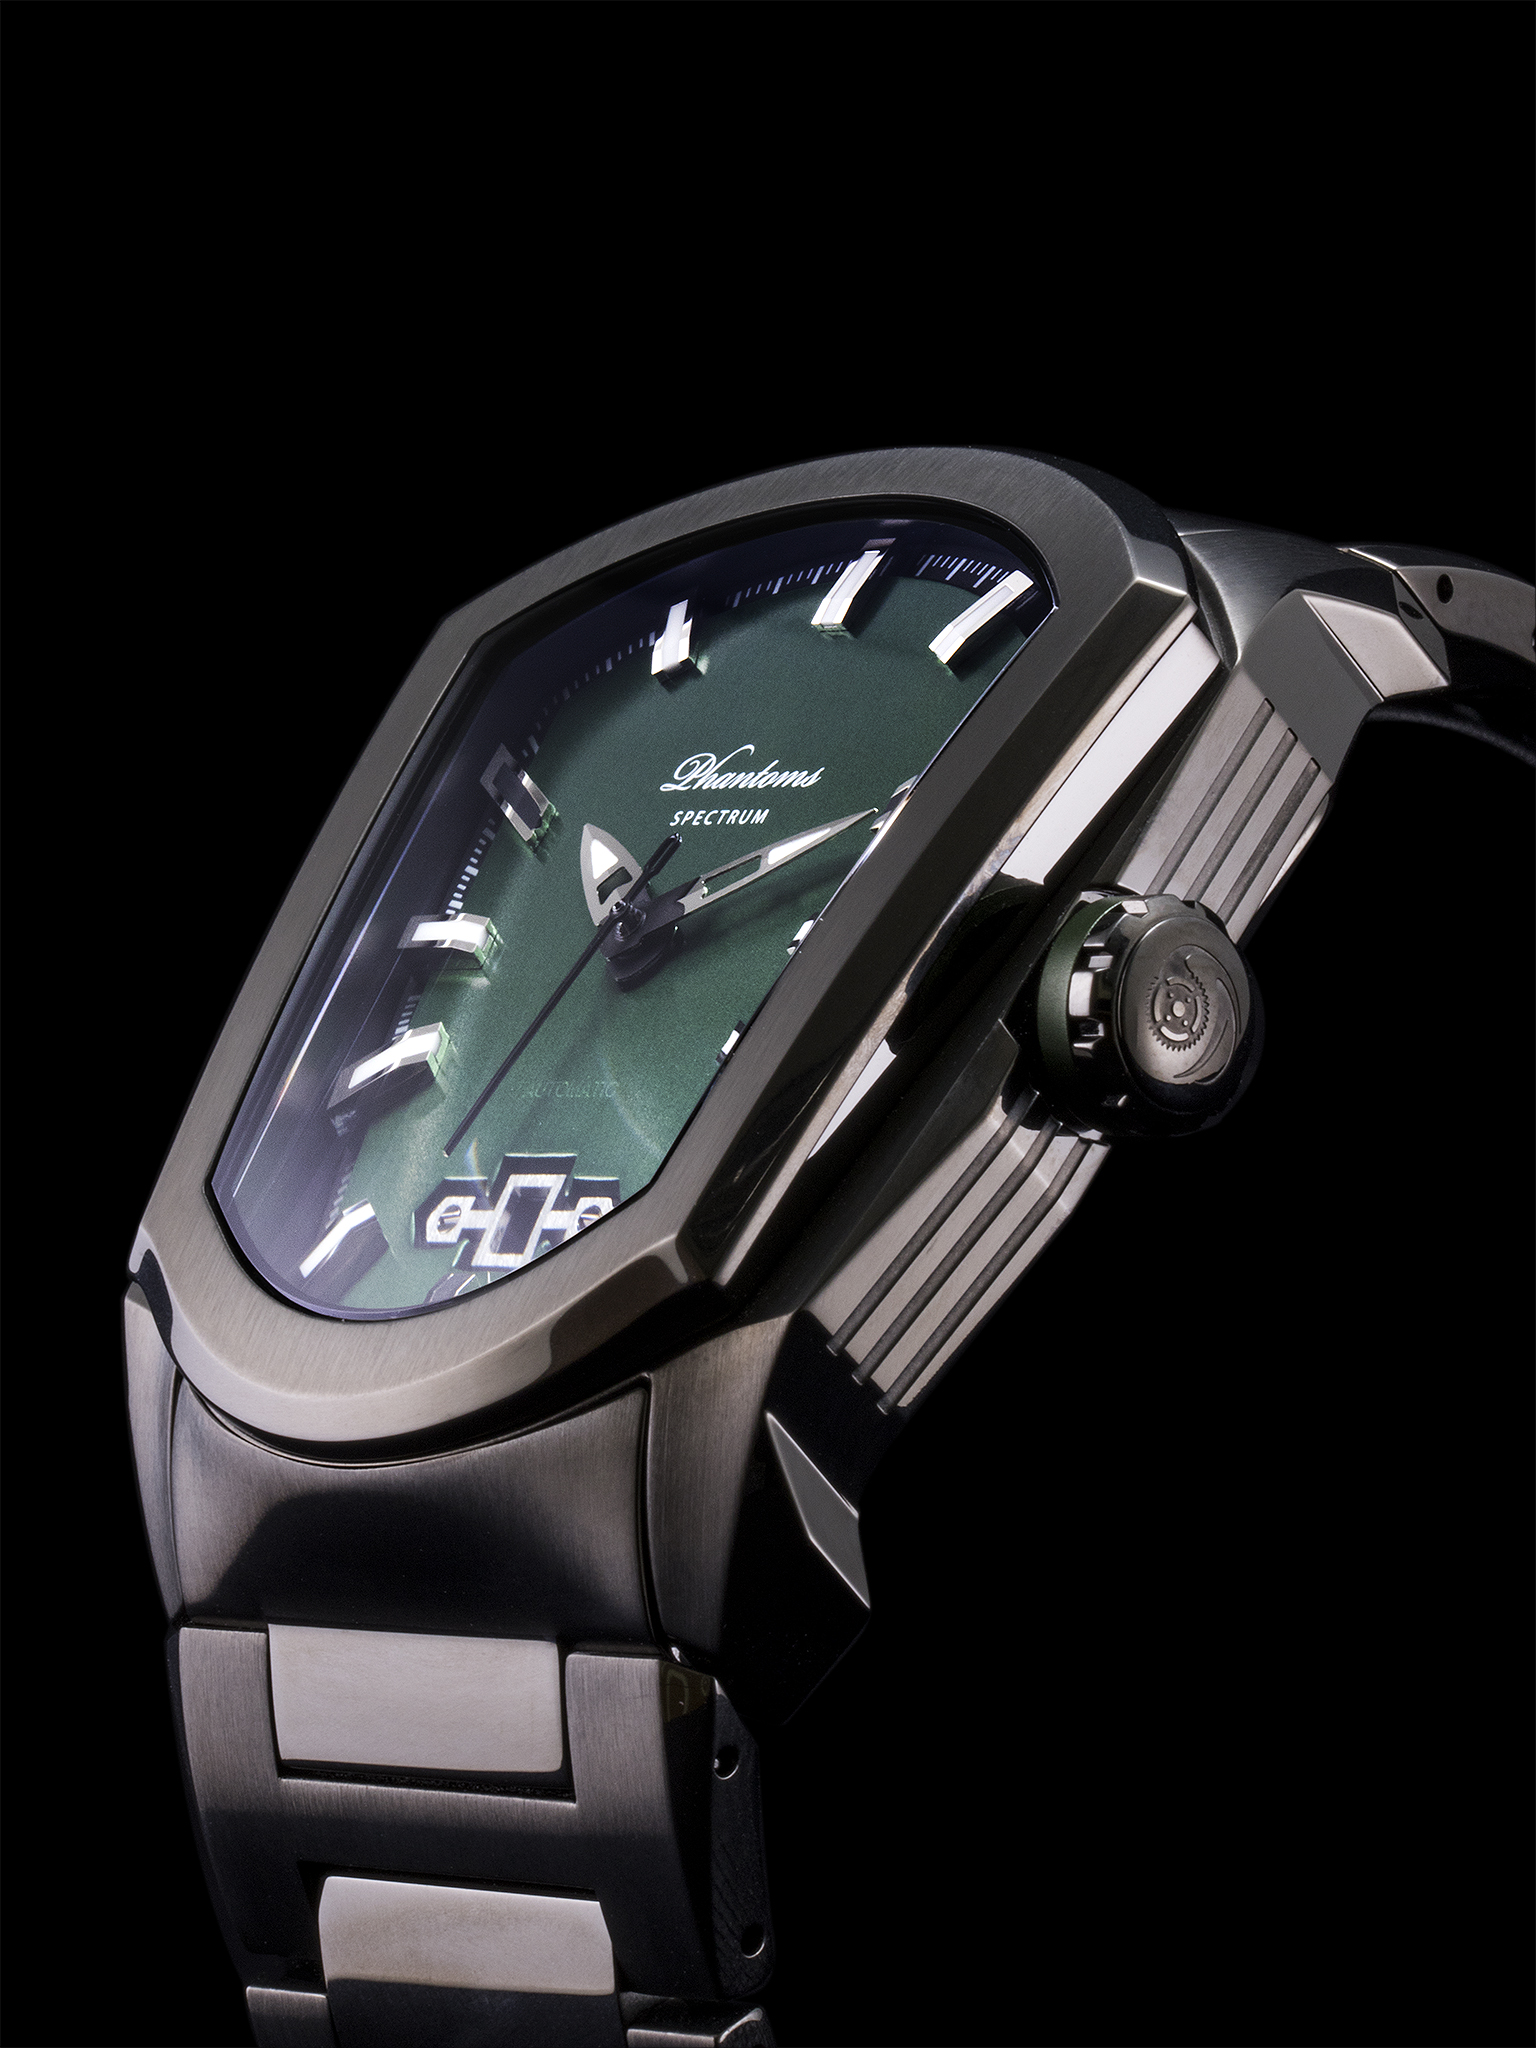 Phantoms Automatic Watch Spectrum Swiss Made Watch